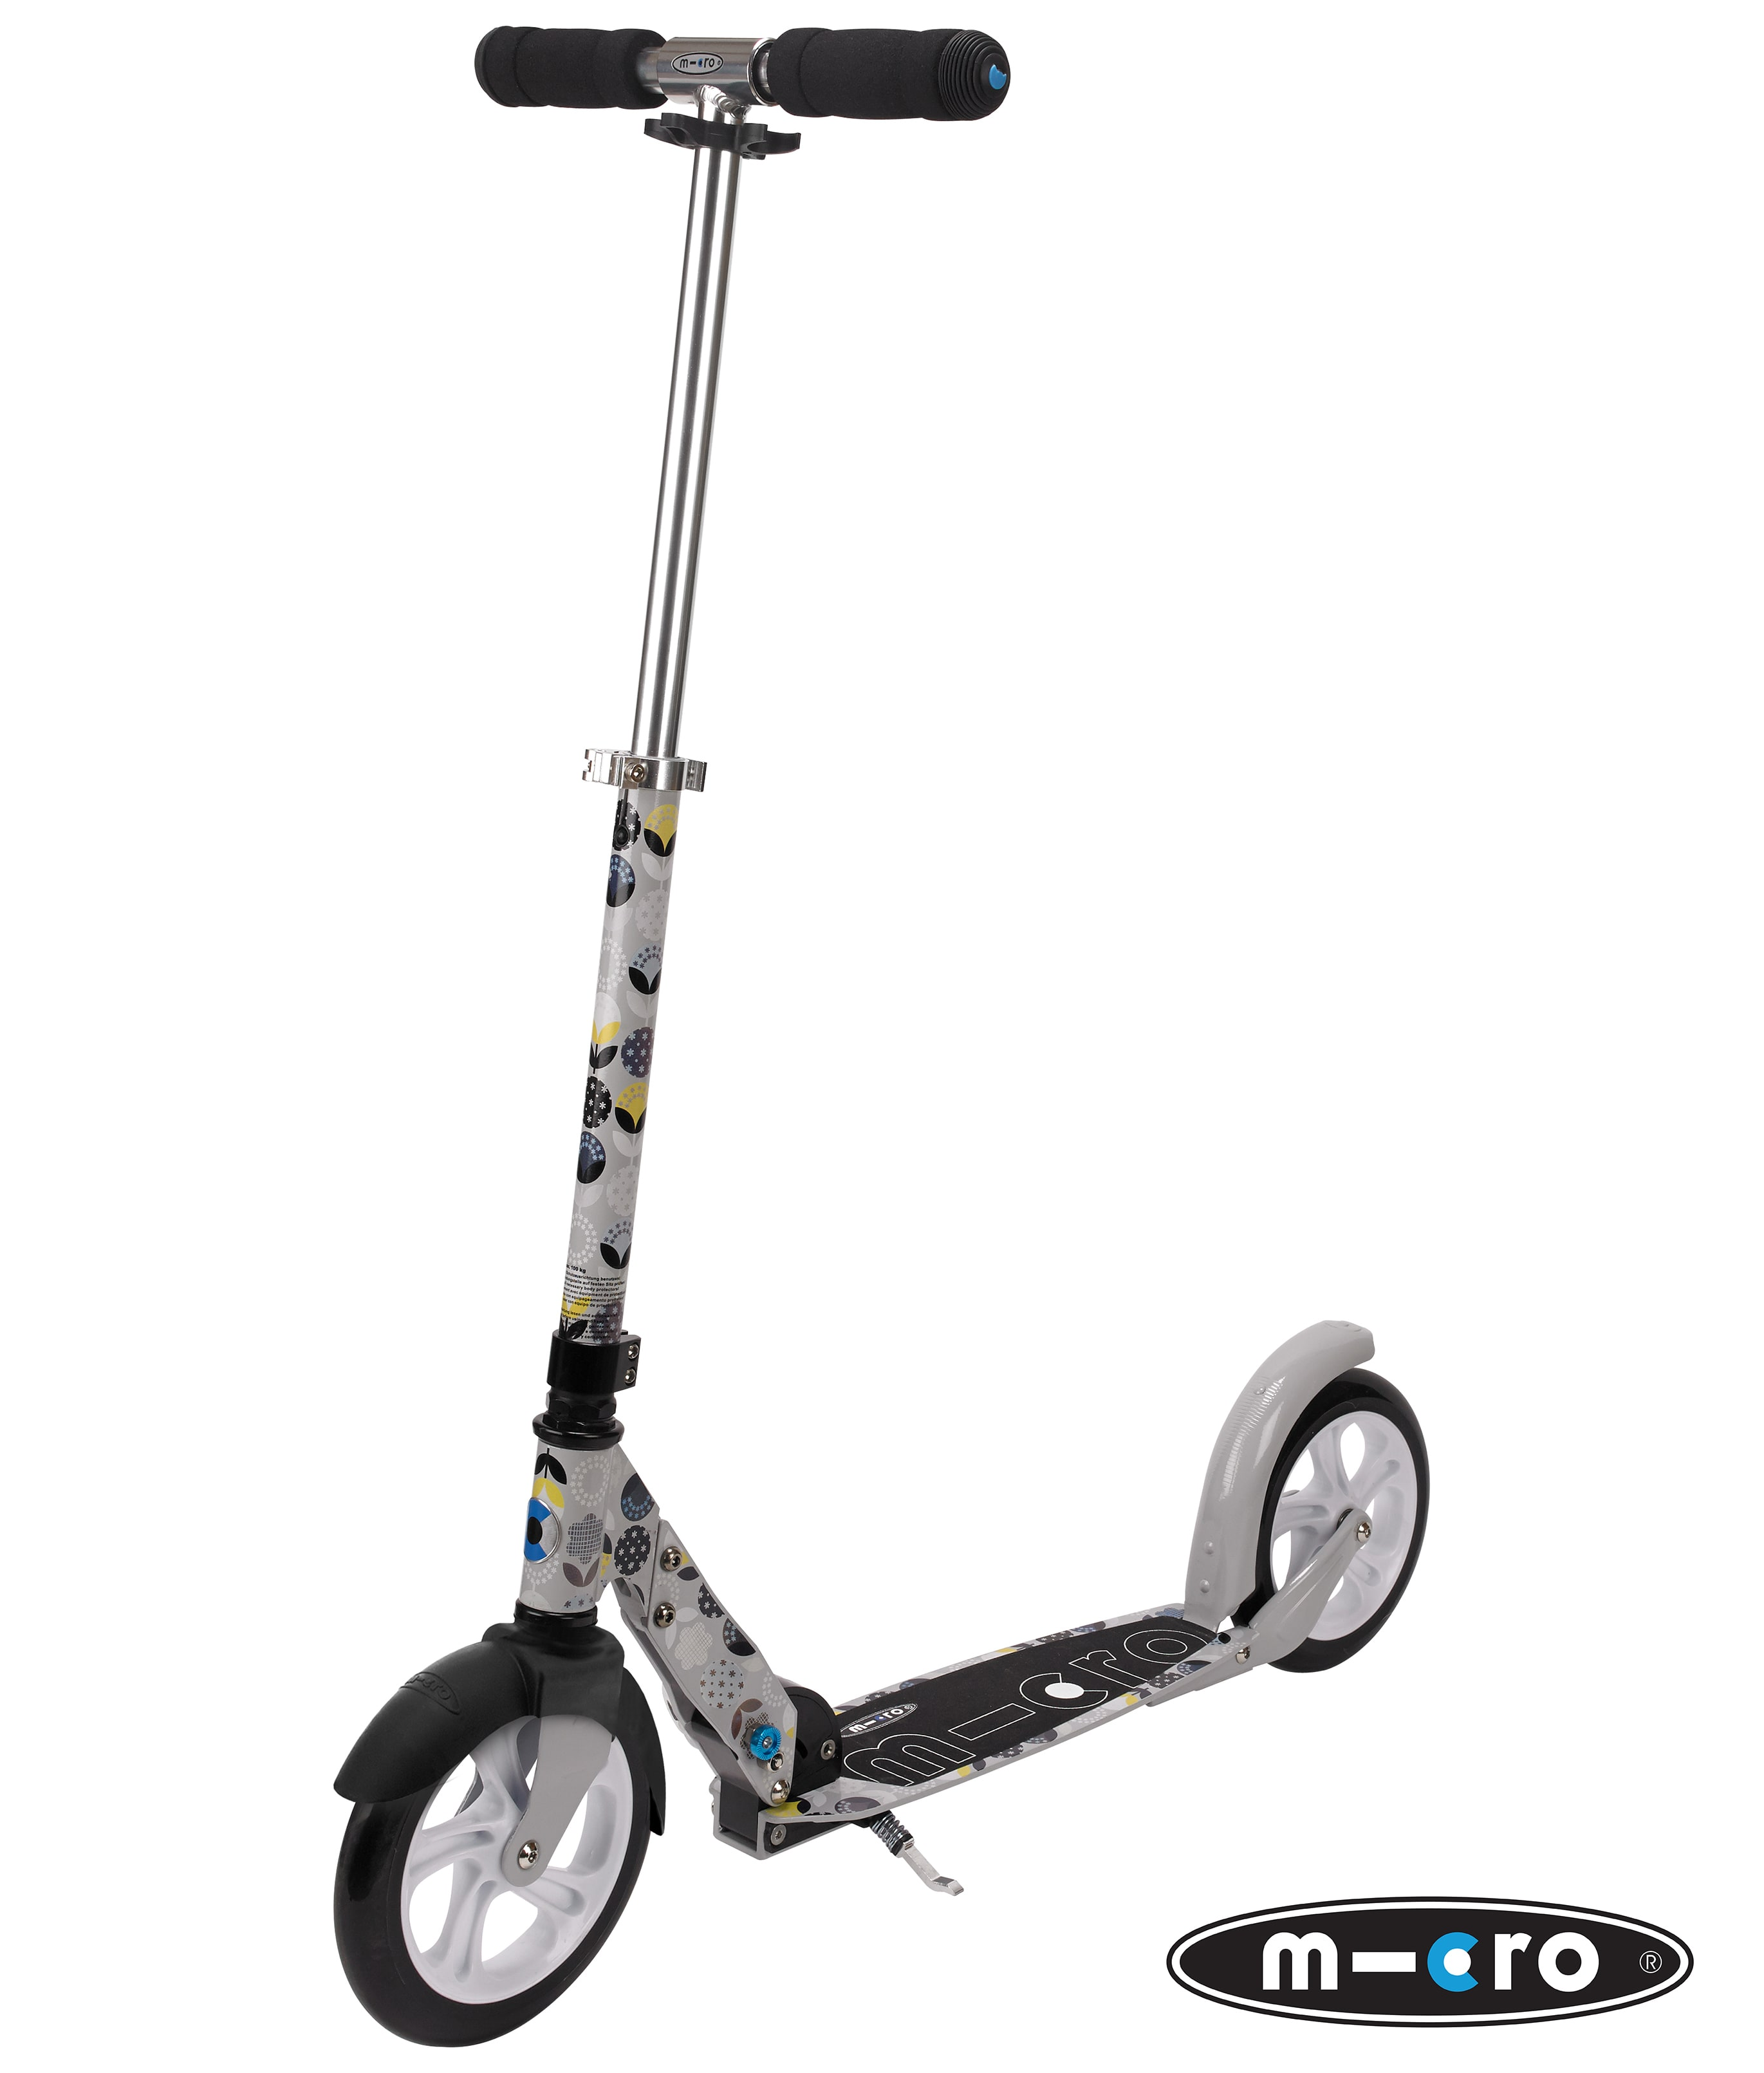 micro adult 39 s scooter floral grey complete scooters. Black Bedroom Furniture Sets. Home Design Ideas